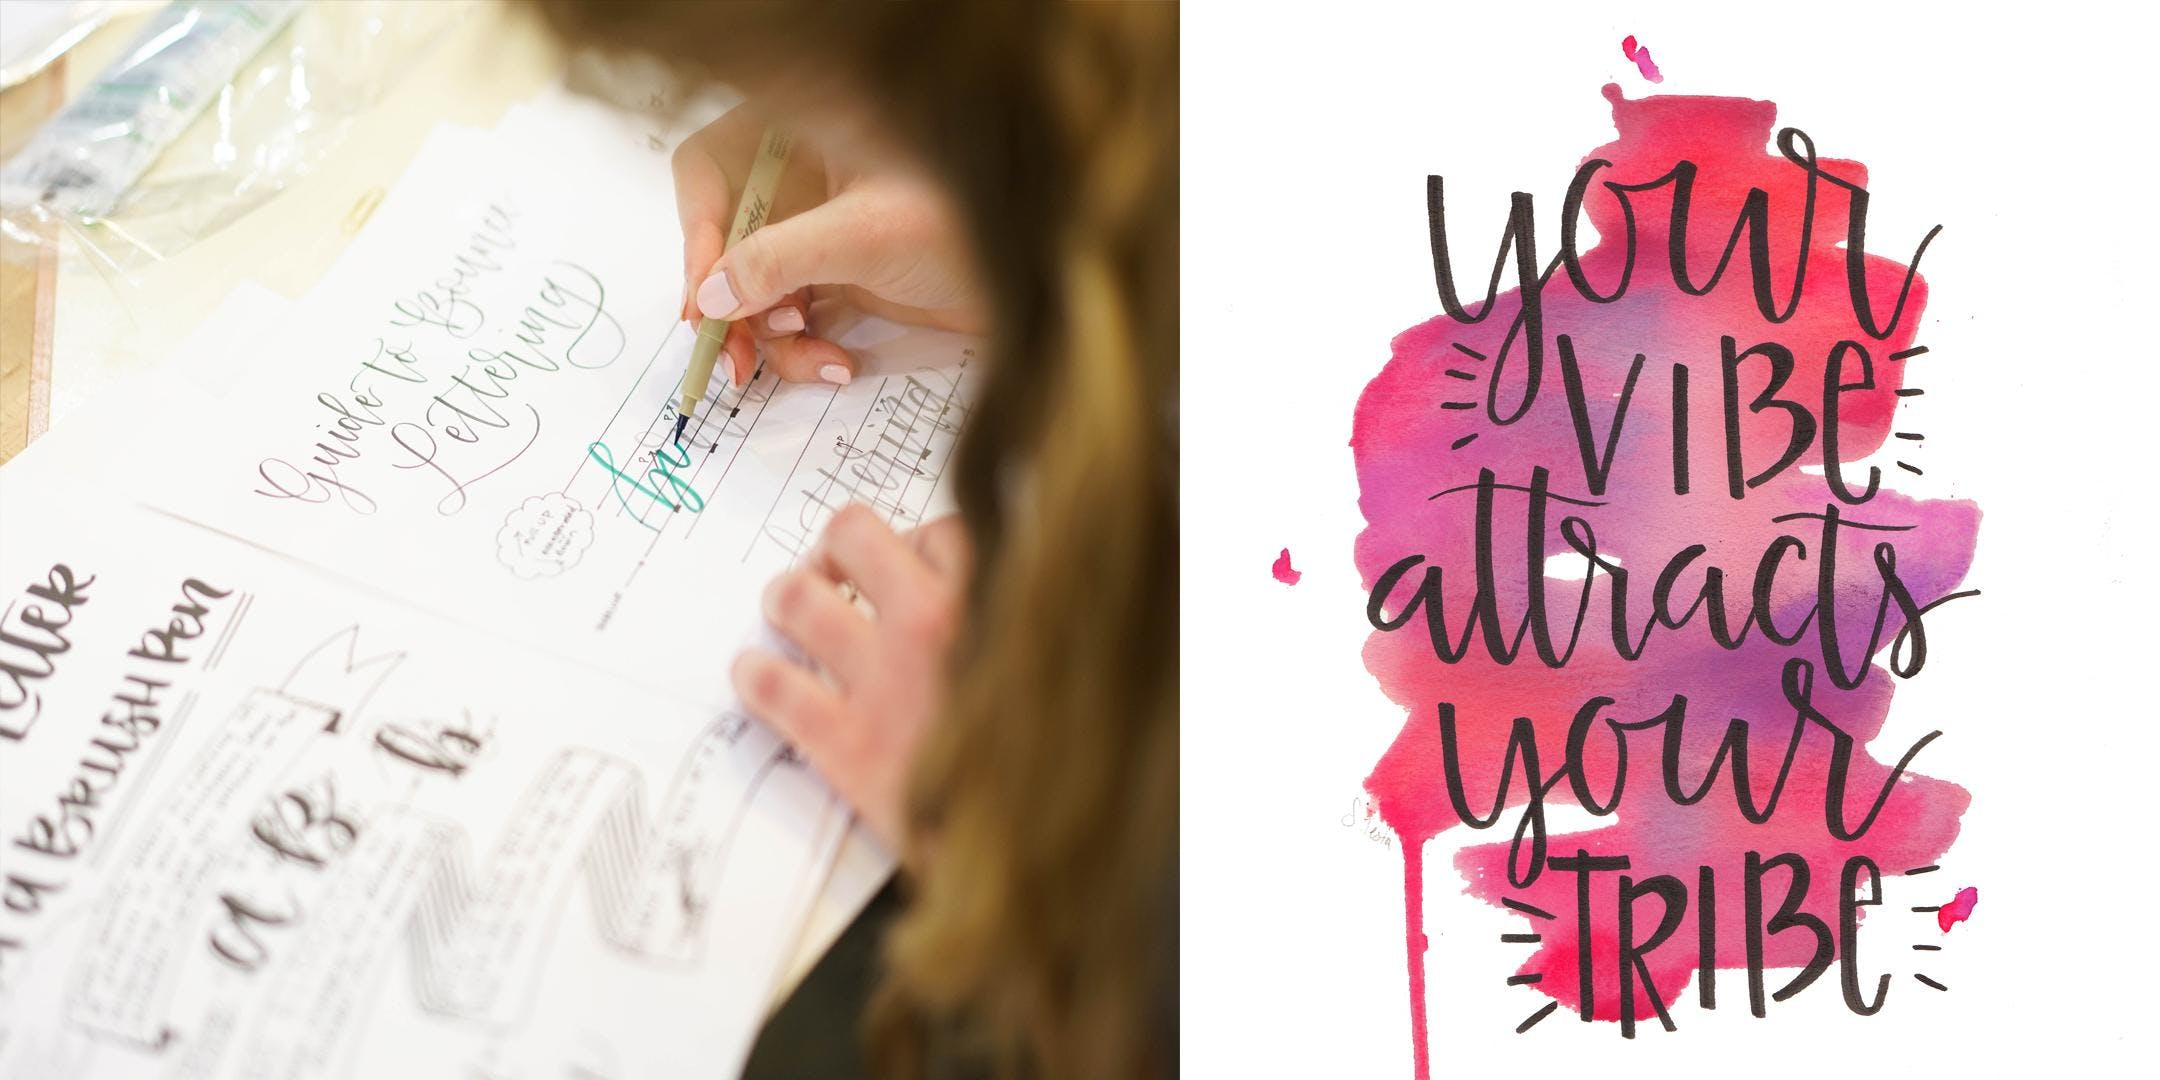 Bespoke Members Intro to Hand Lettering Works